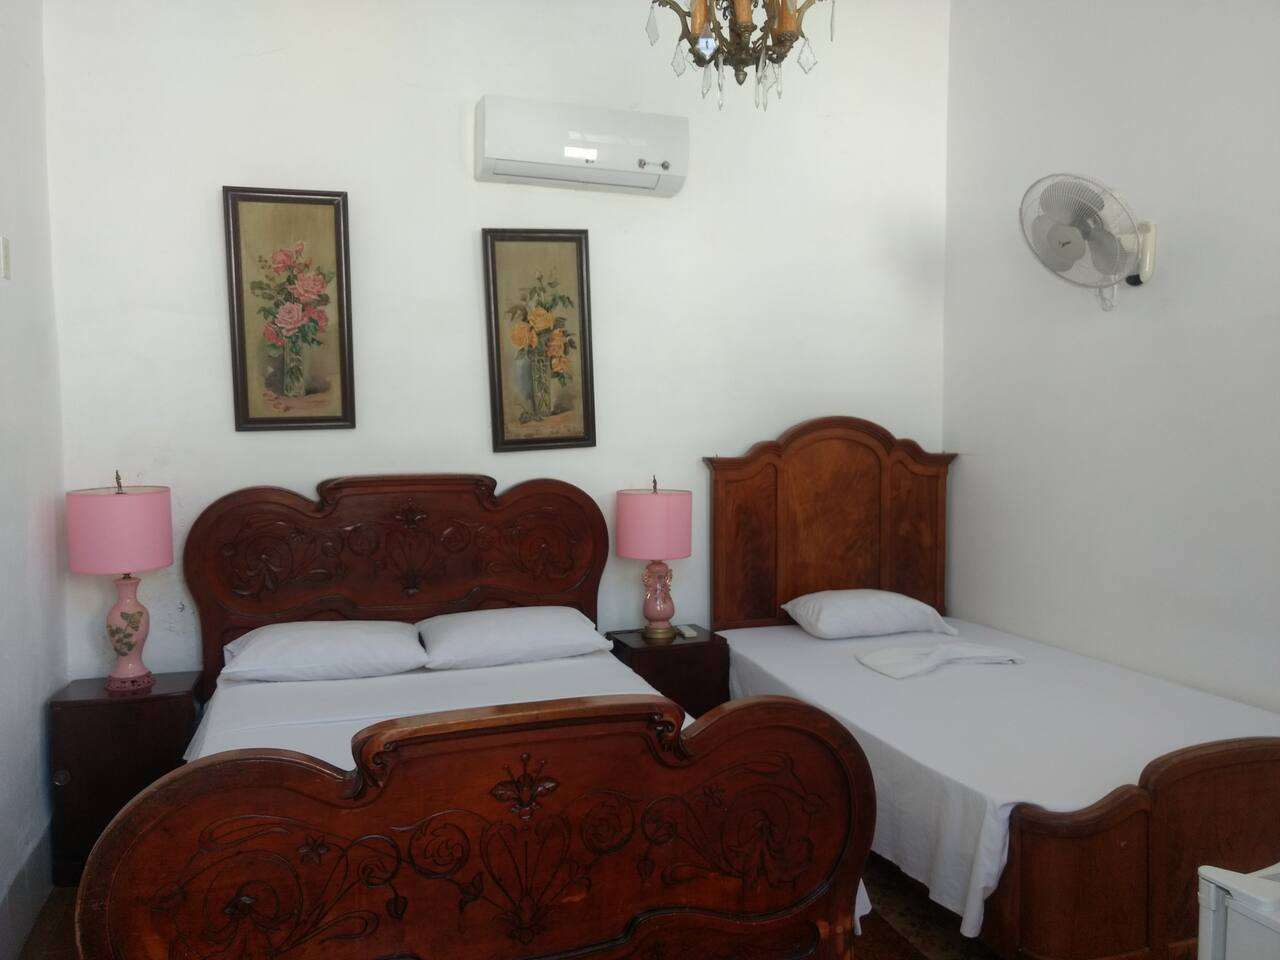 CIE002 – Room 2 Triple room with private bathroom